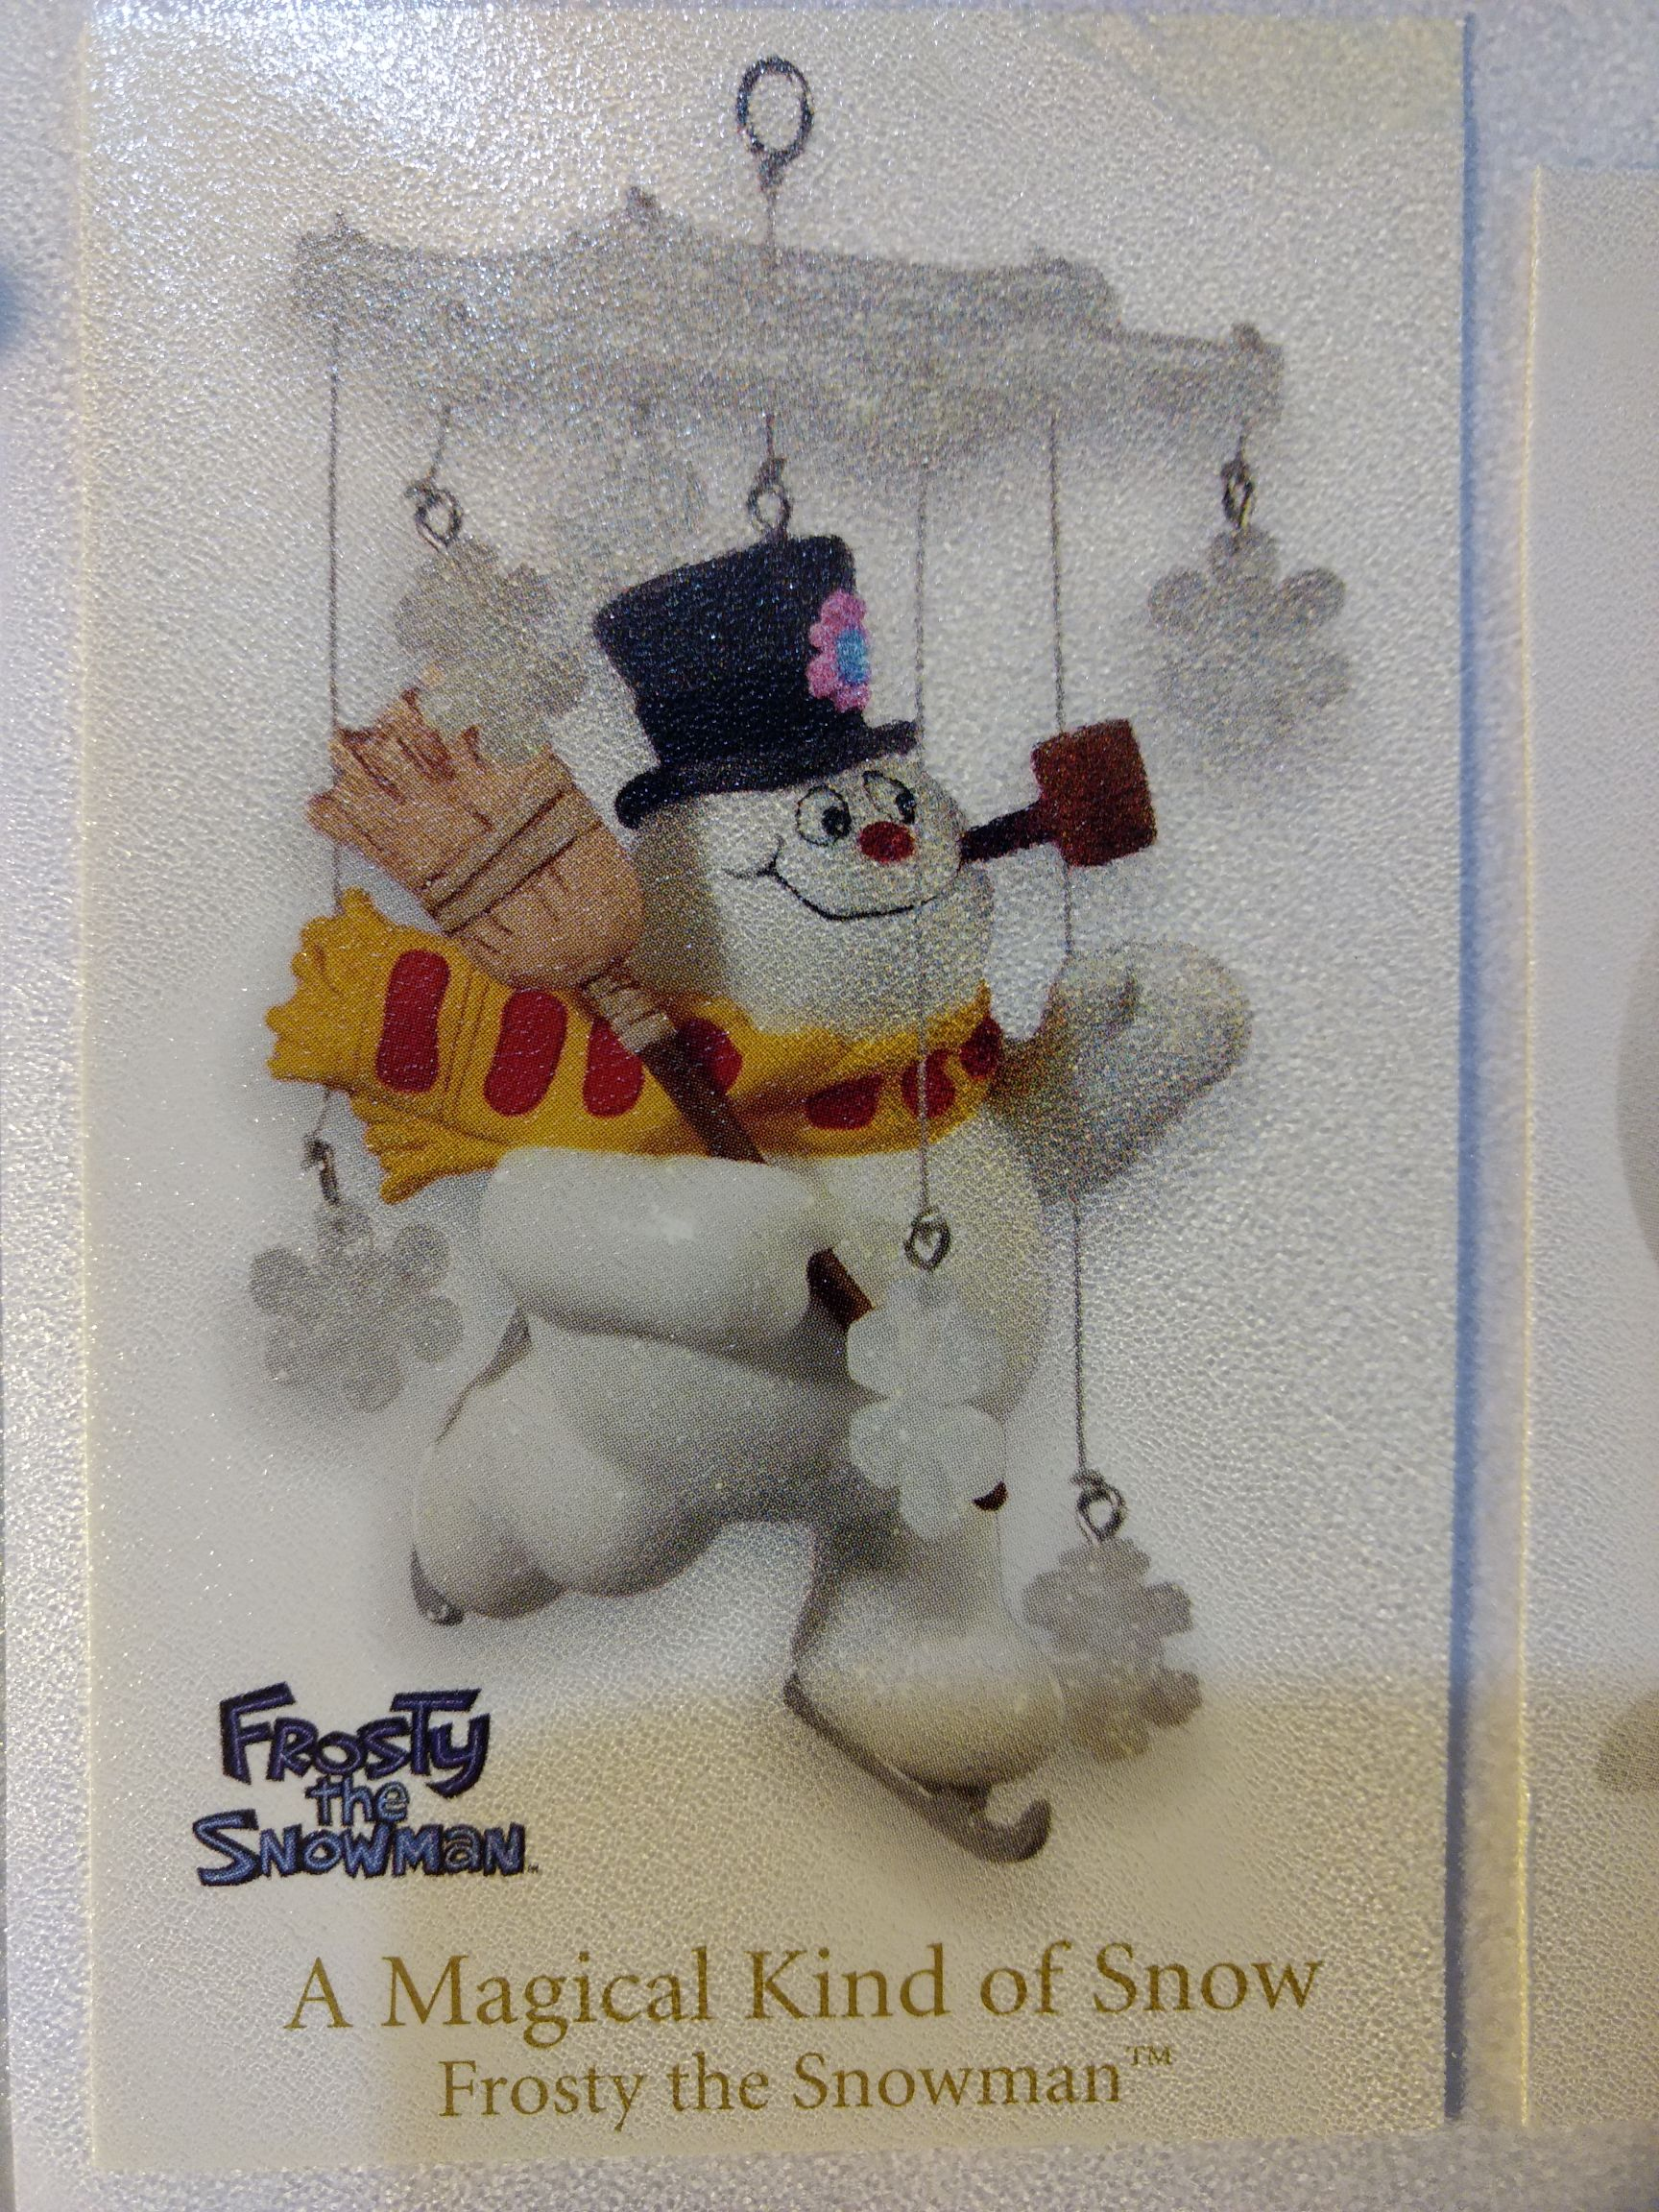 Frosty the Snowman - The Magical Kind Of Snow Ornament - Hallmark front image (front cover)